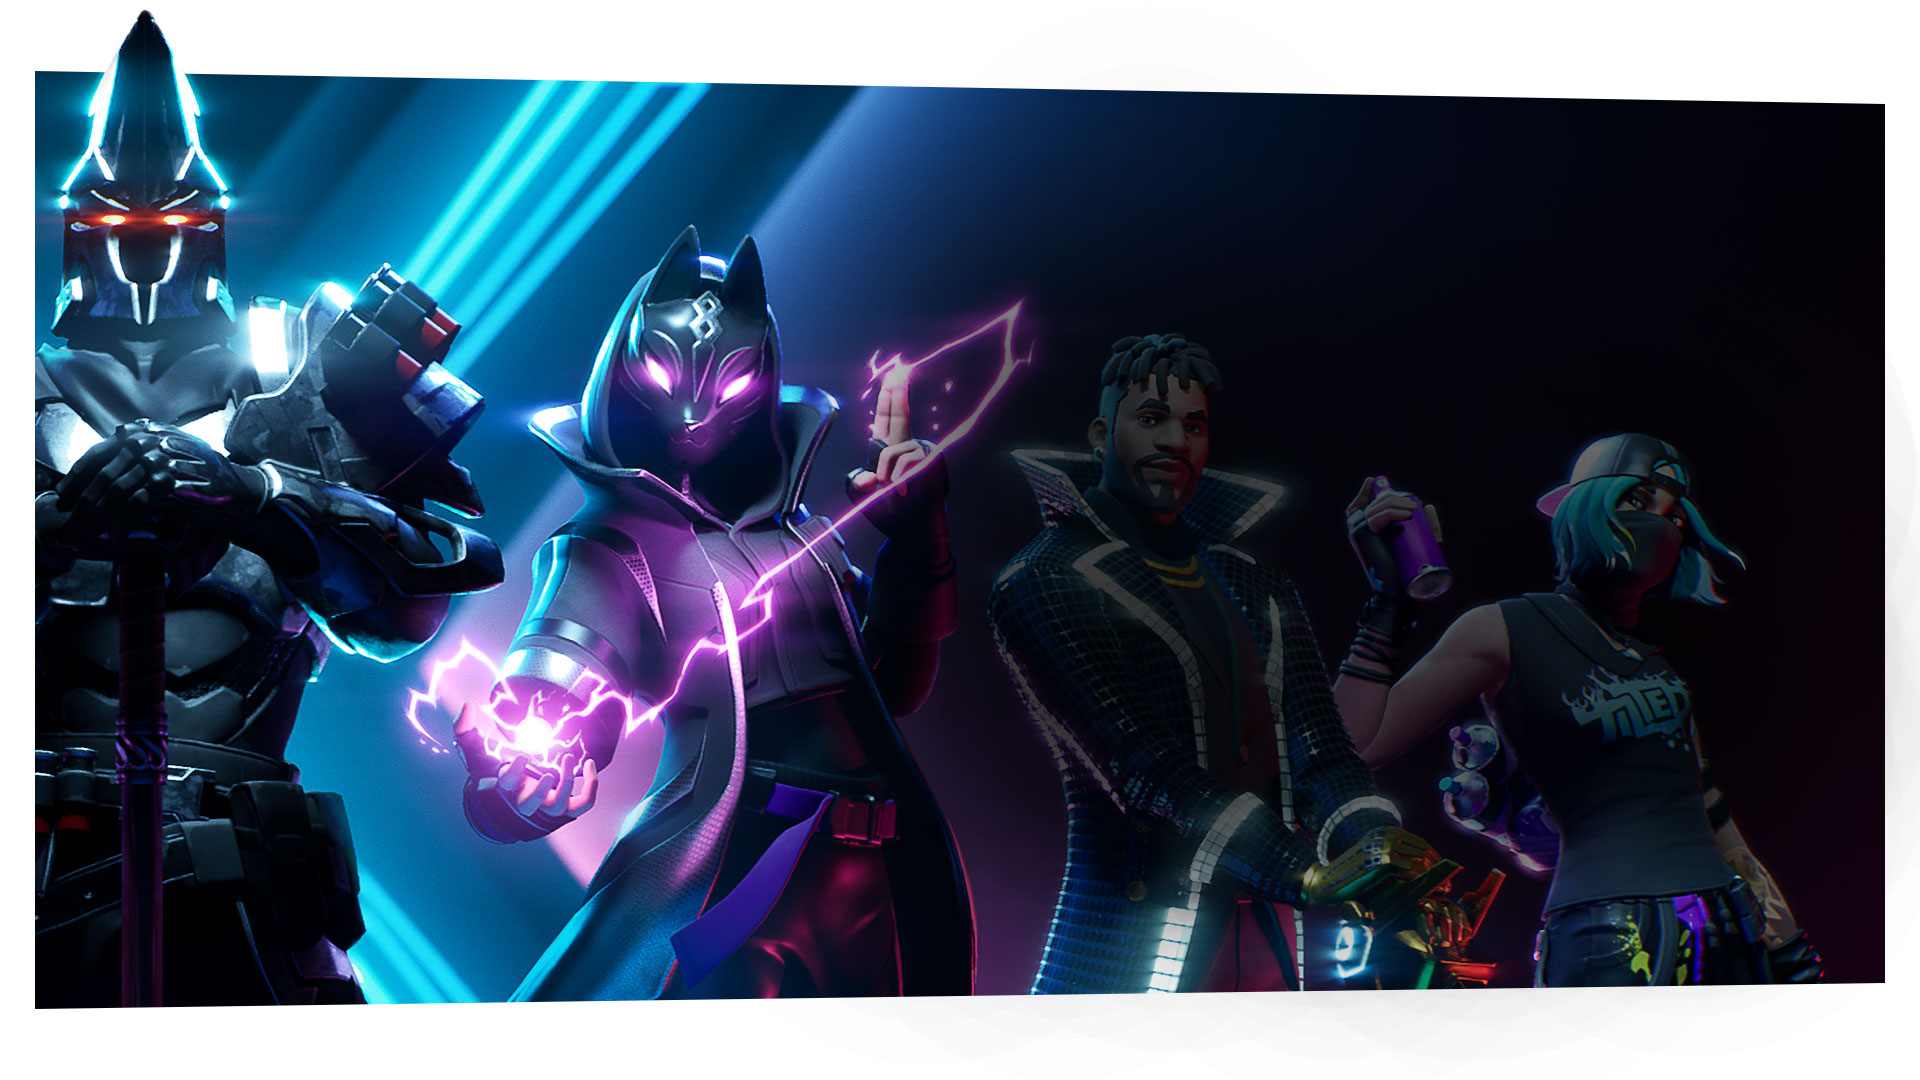 Fortnite Season X characters posing in formation